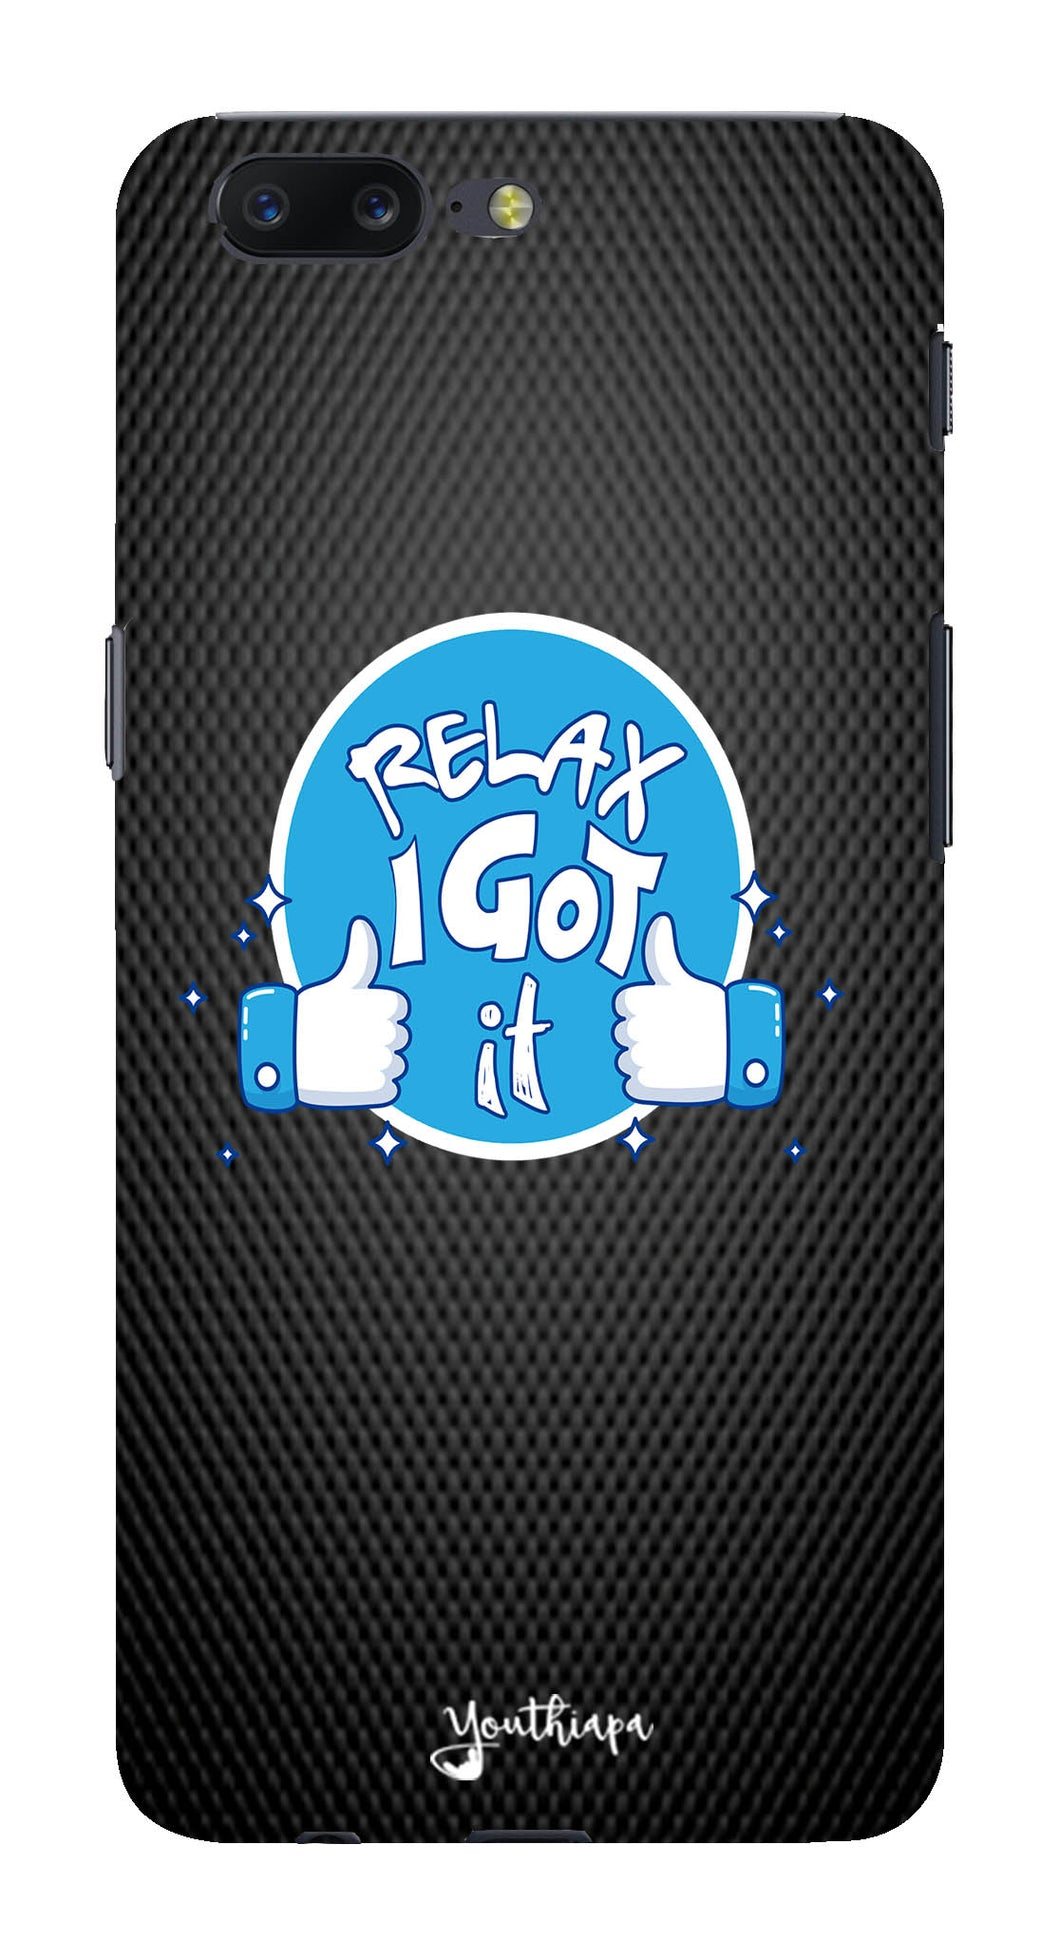 Relax Edition for One plus 5